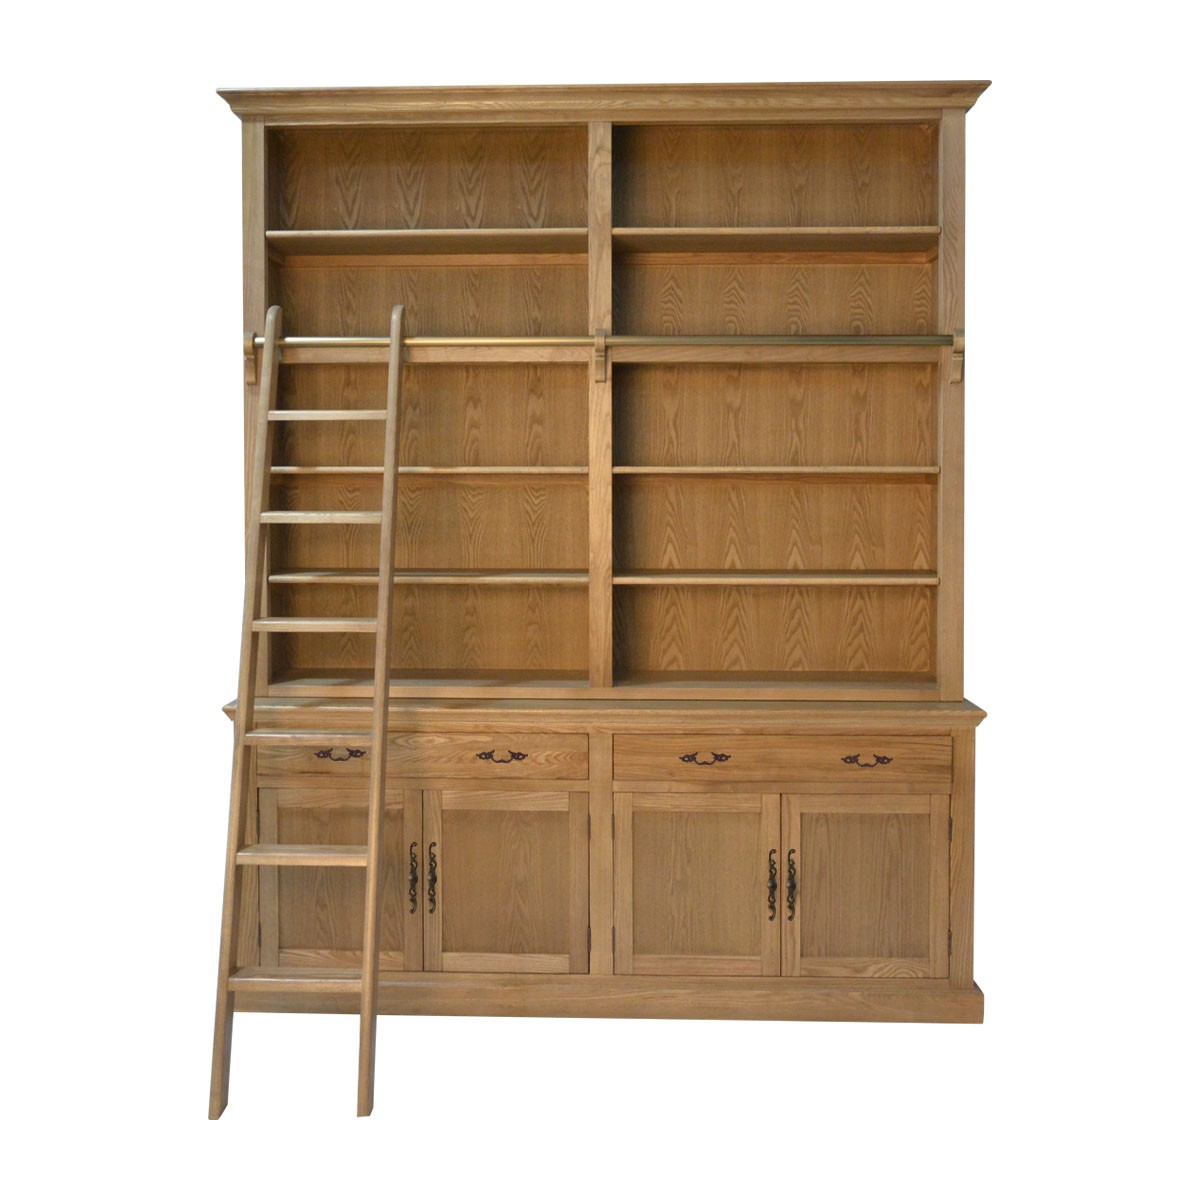 Excellent French Provincial Hamptons Natural Oak Open Double Buffet And Hutch Bookcase With Ladder Home Interior And Landscaping Ologienasavecom